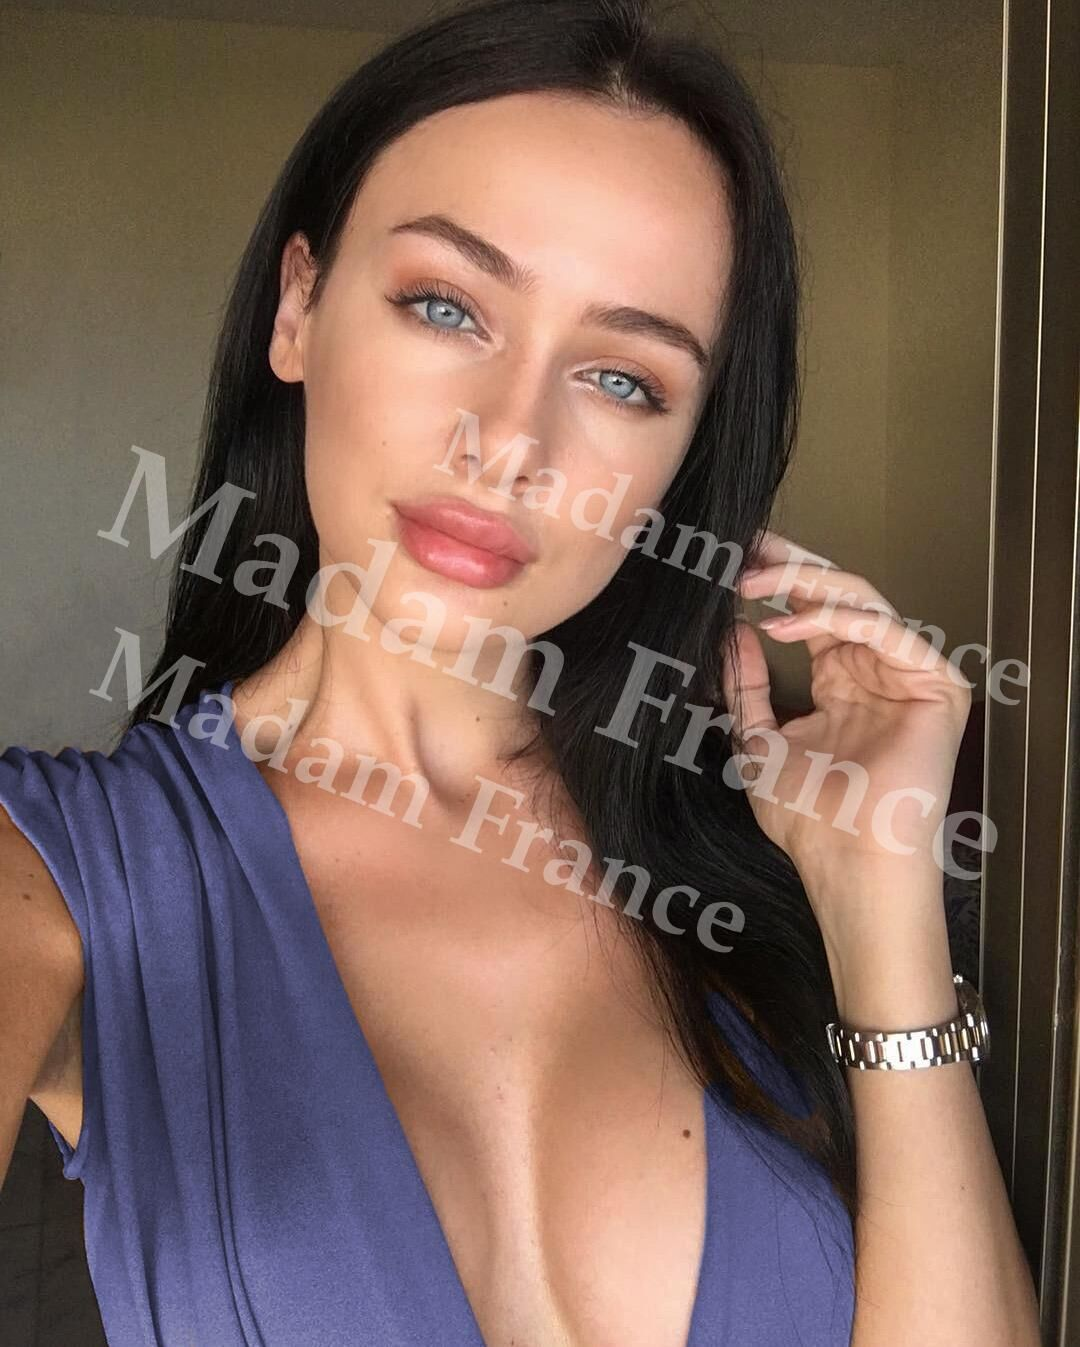 Melisa model on Madam France escort service